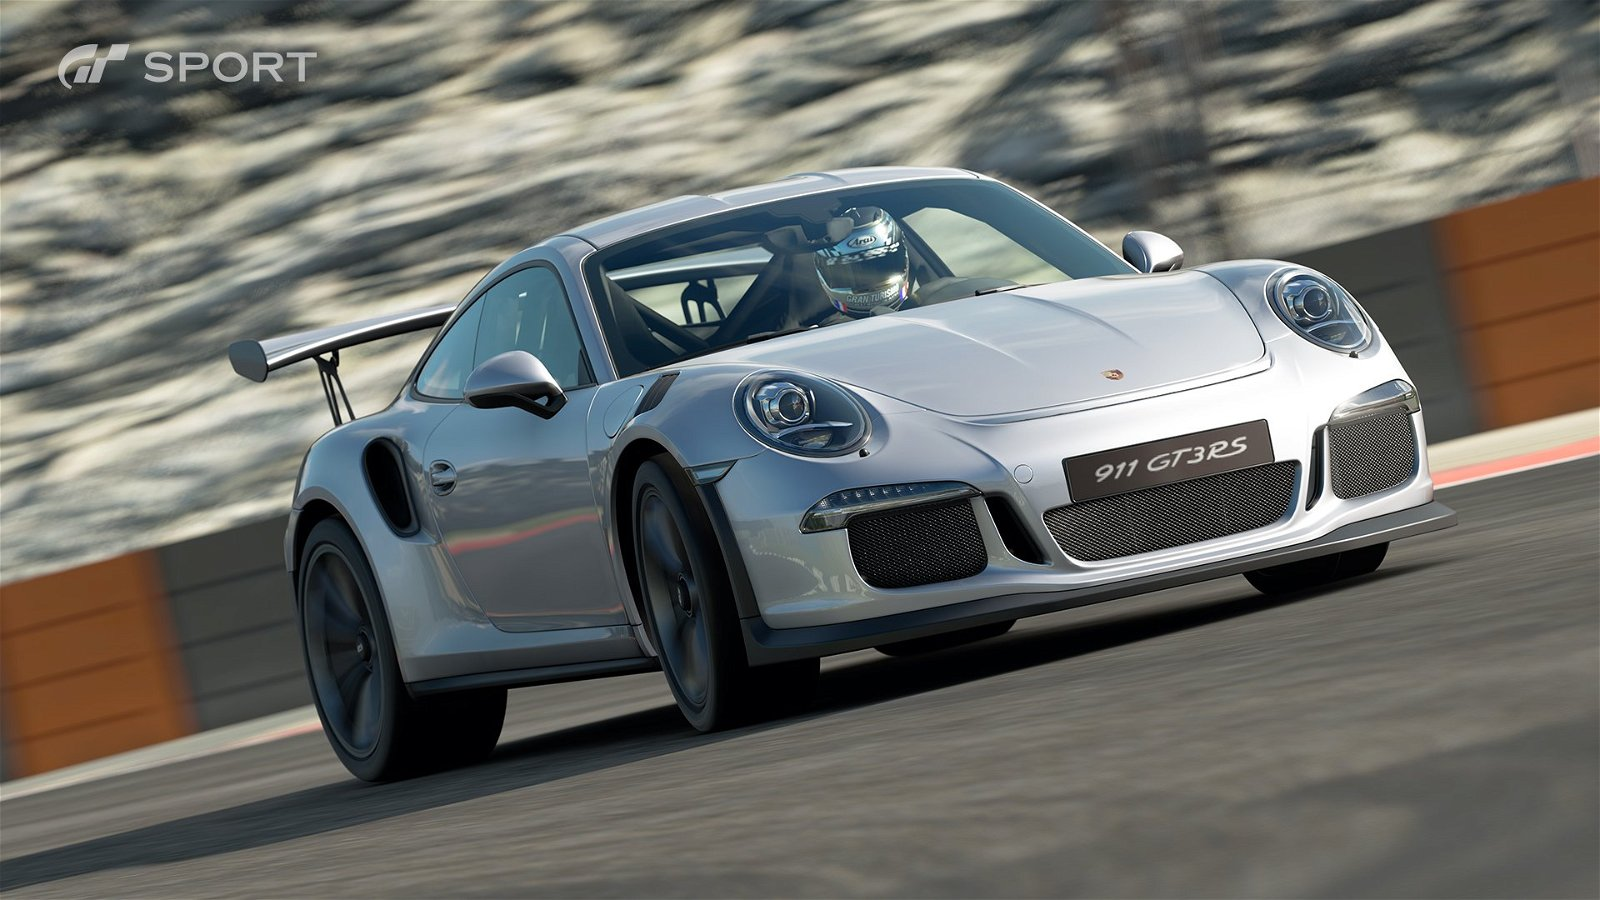 Porsche Coming To Gran Turismo For The First Time